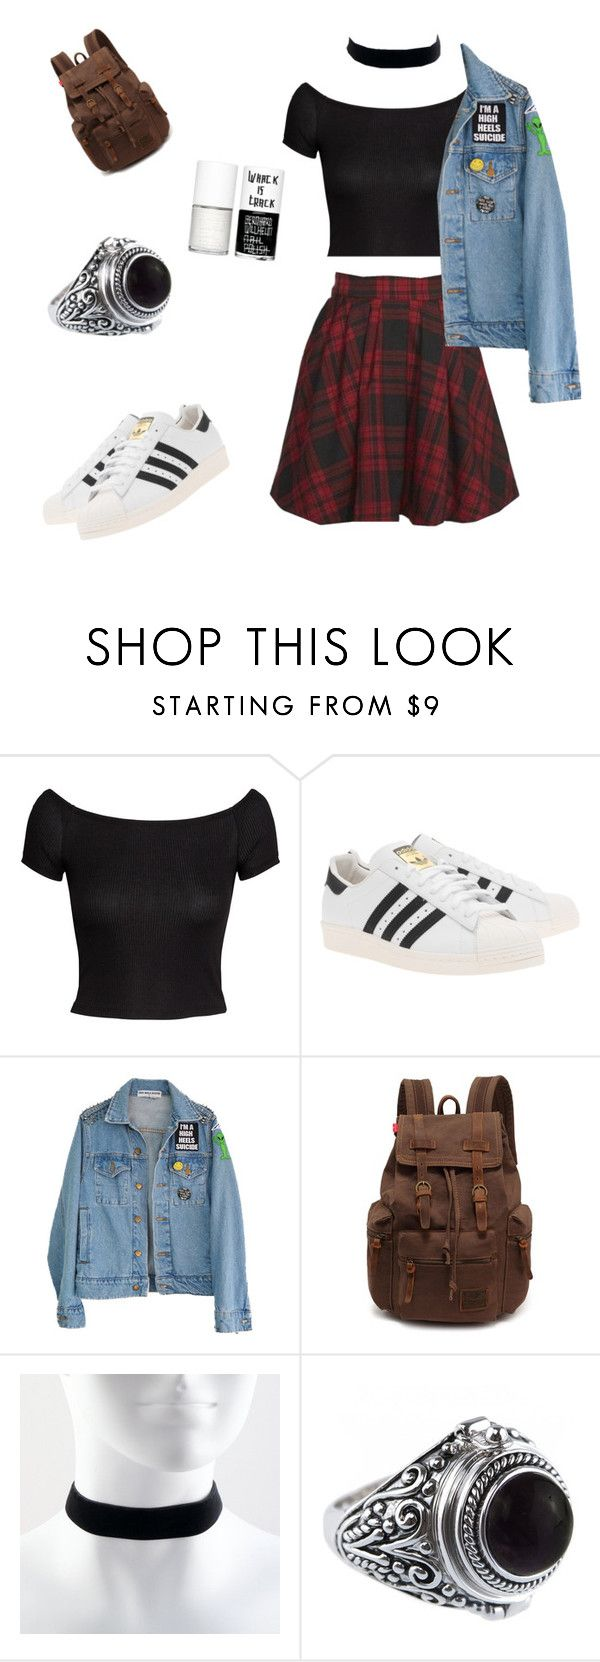 """Grunge alien"" by selin-antonioli ❤ liked on Polyvore featuring H&M, adidas Originals, Mini Cream, High Heels Suicide and Uslu Airlines"